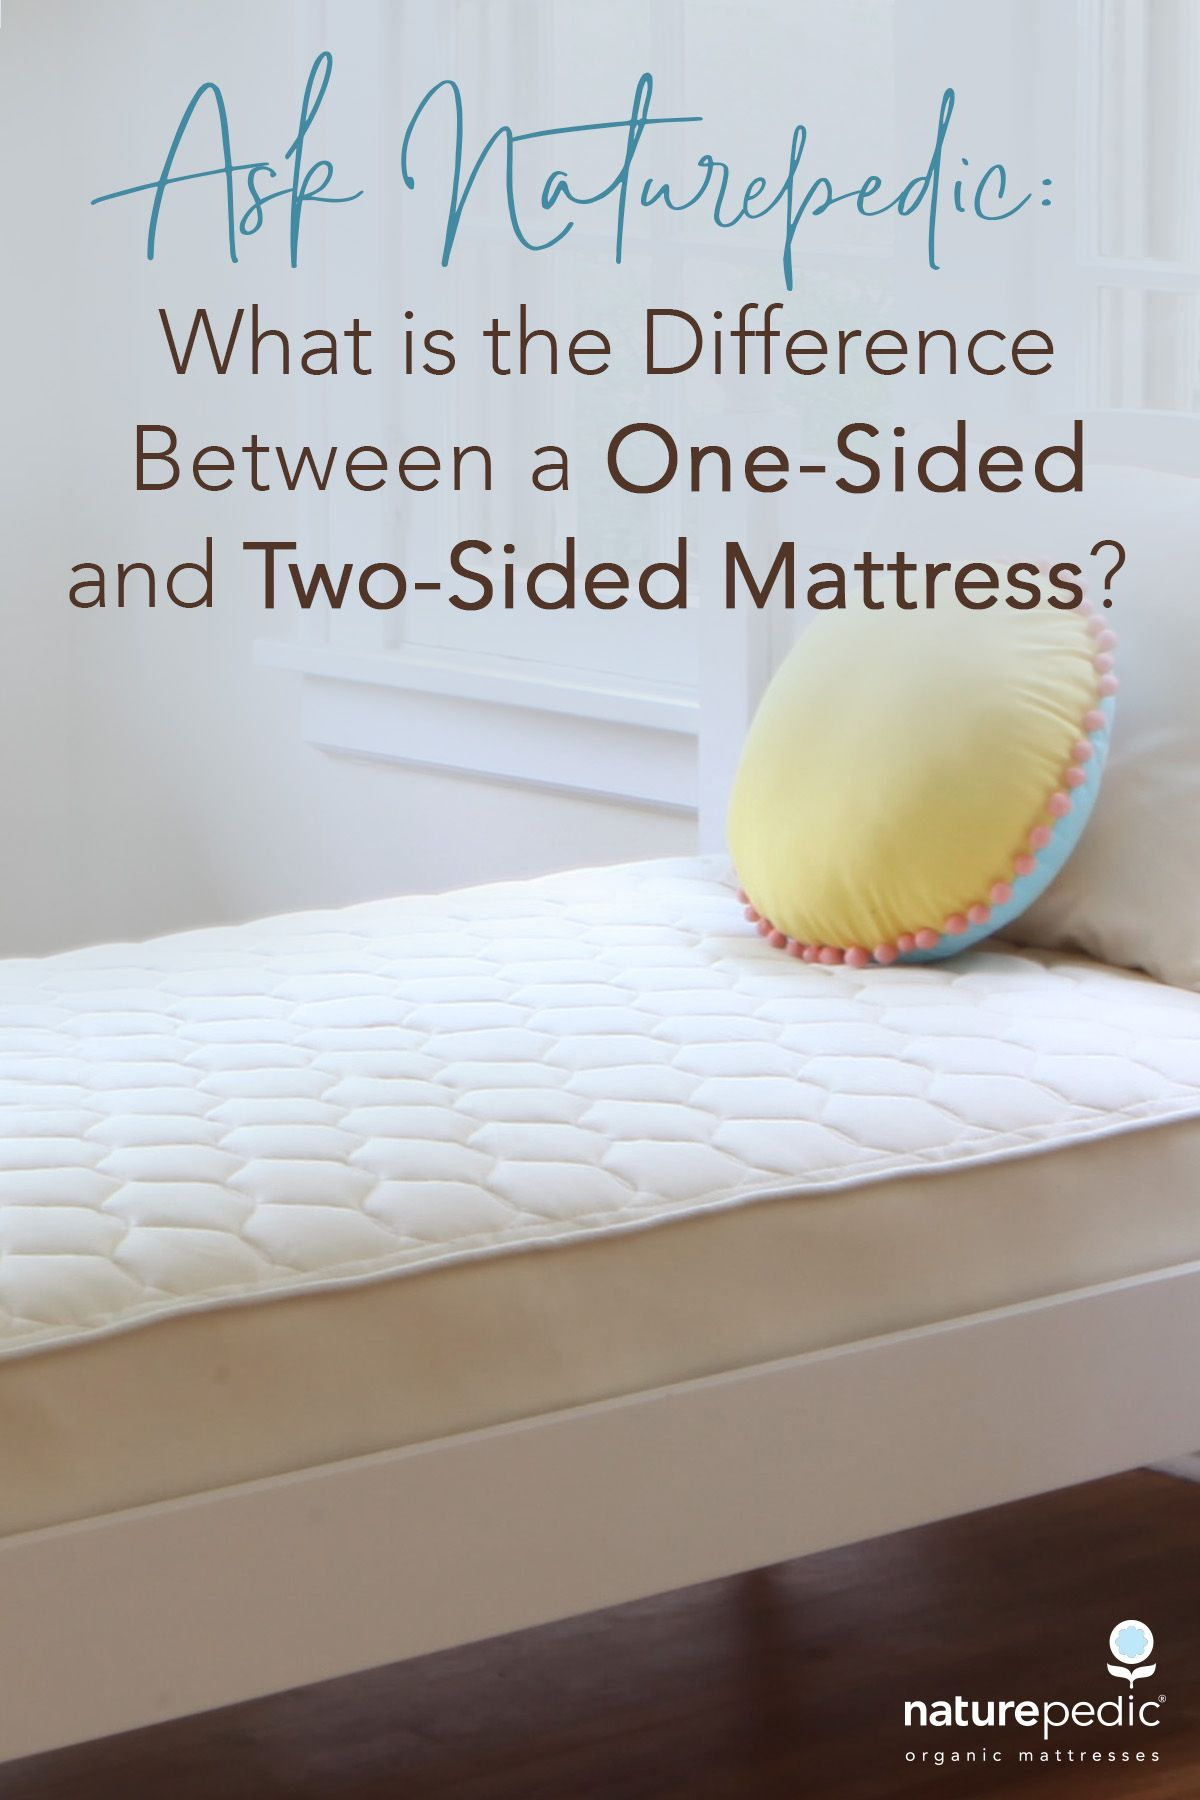 New Blog Our Customer Service Team Shares The Attributes Benefits And Care Of Both 1 Sided And 2 Sided Mattresses Mattress Organic Crib Mattress Naturepedic